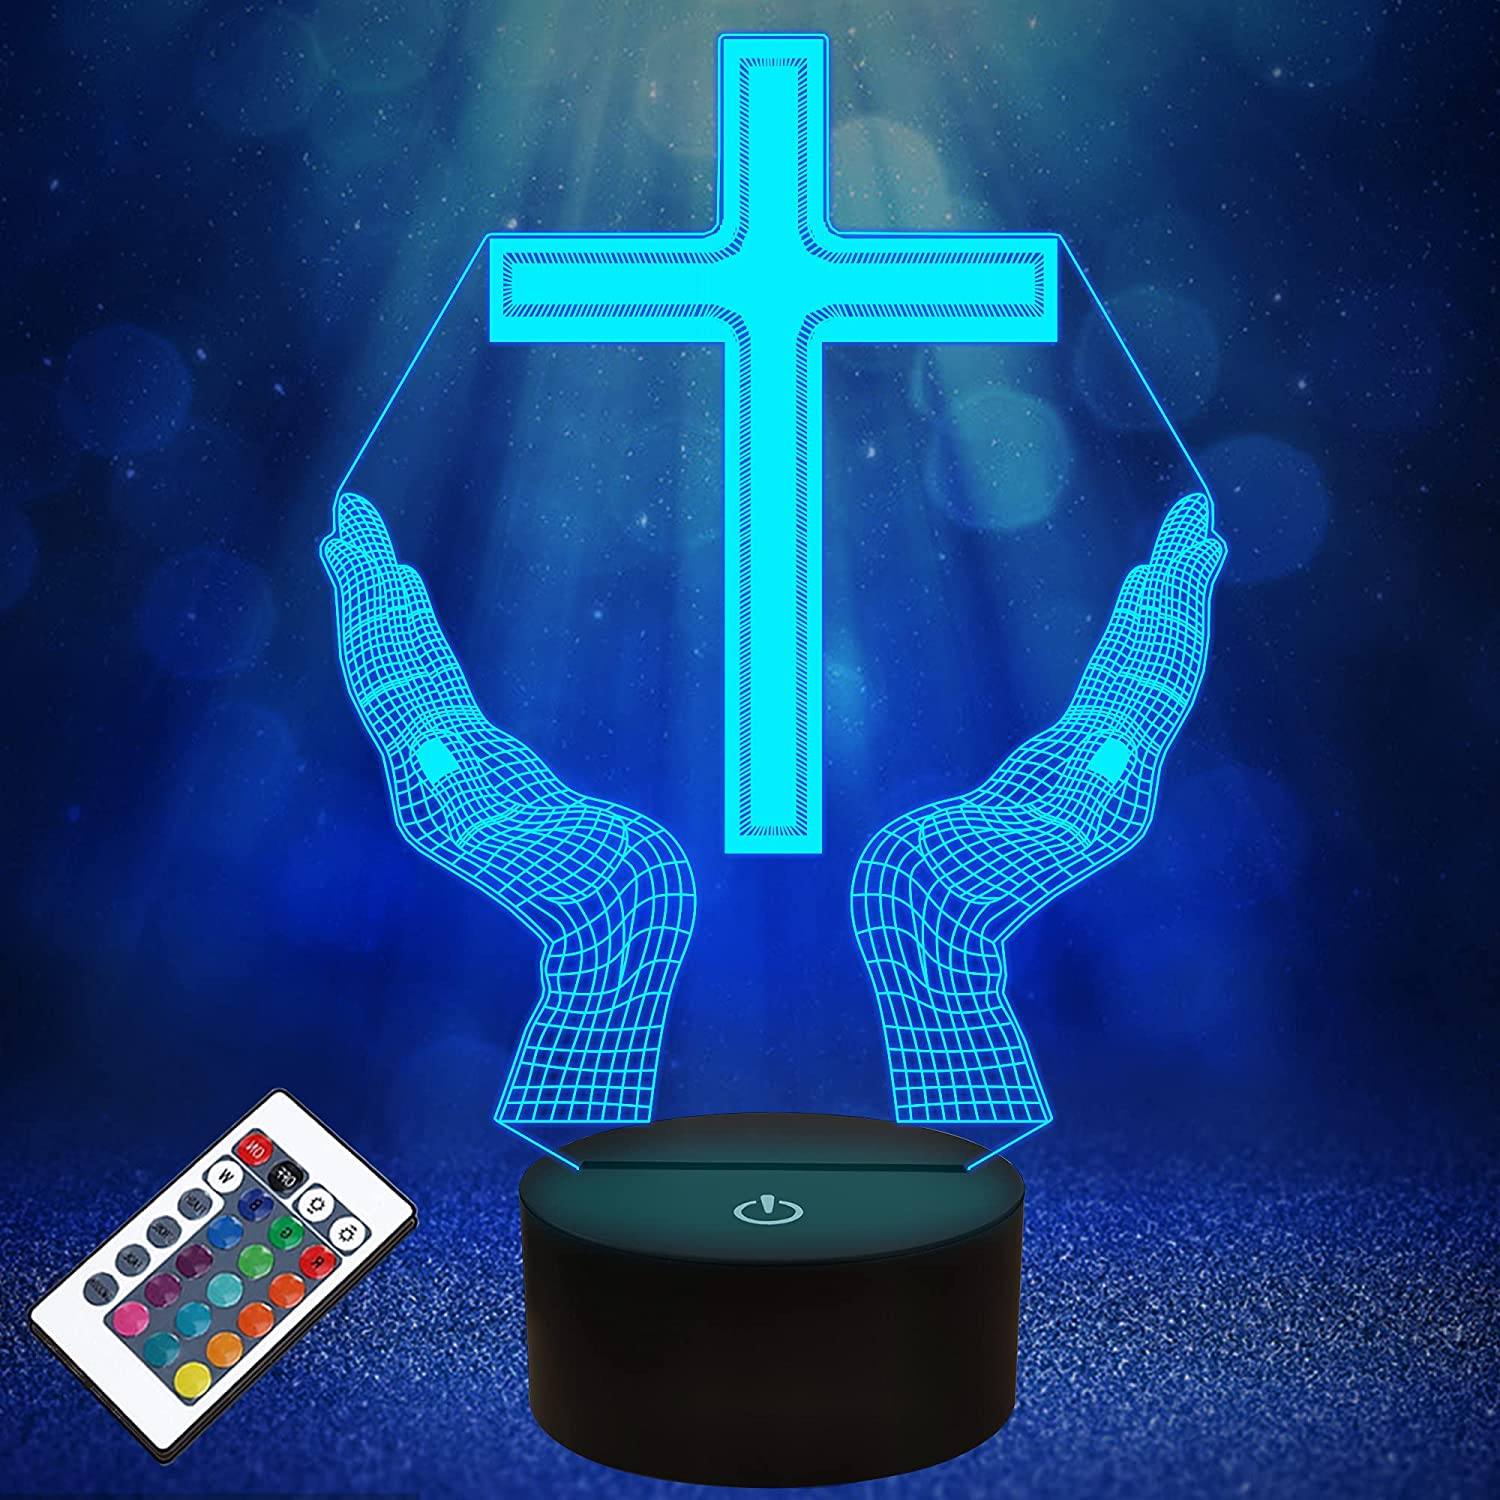 Jesus Cross 3D LED Night Light for Friends Xmas Easter Room Decor Gifts,Optical Illusion Desk Table Lamp with Remote + 16 Color Flashing Change + Timer